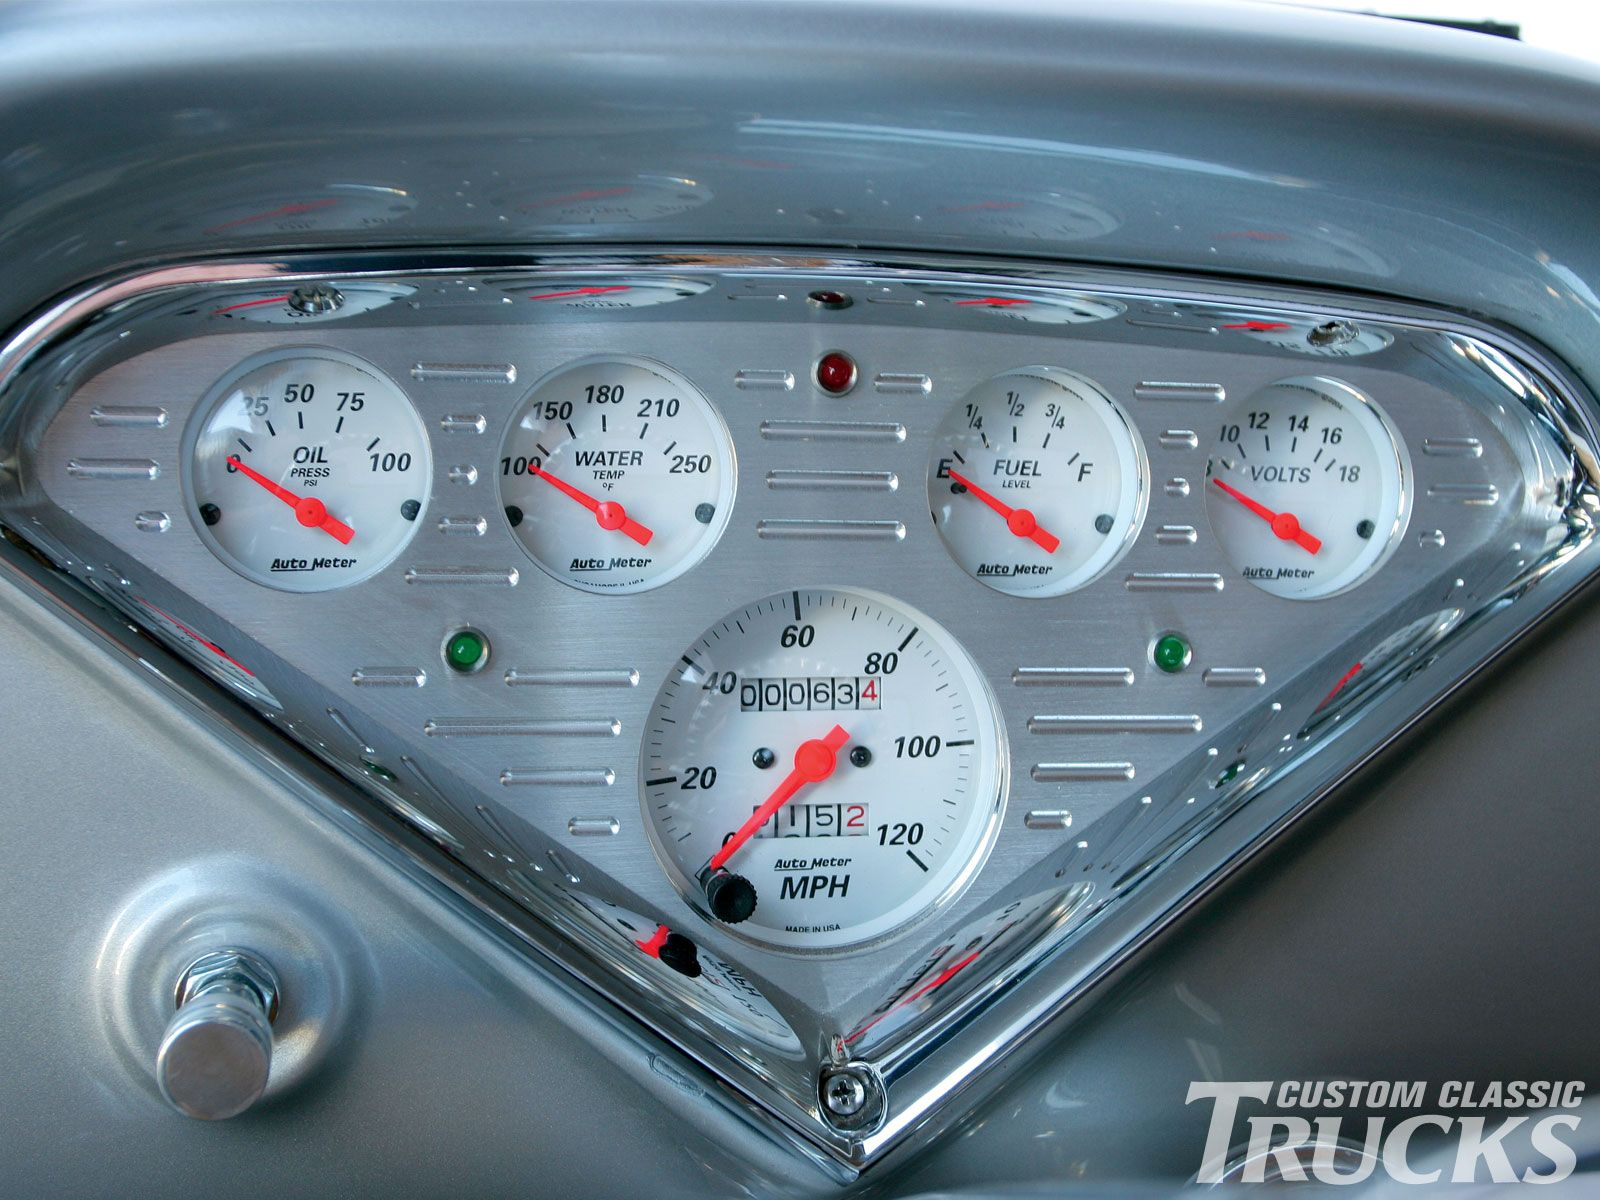 1958 Chevy Apache Pickup Truck The On My Listlist Pinterest 1954 Gauge Cluster